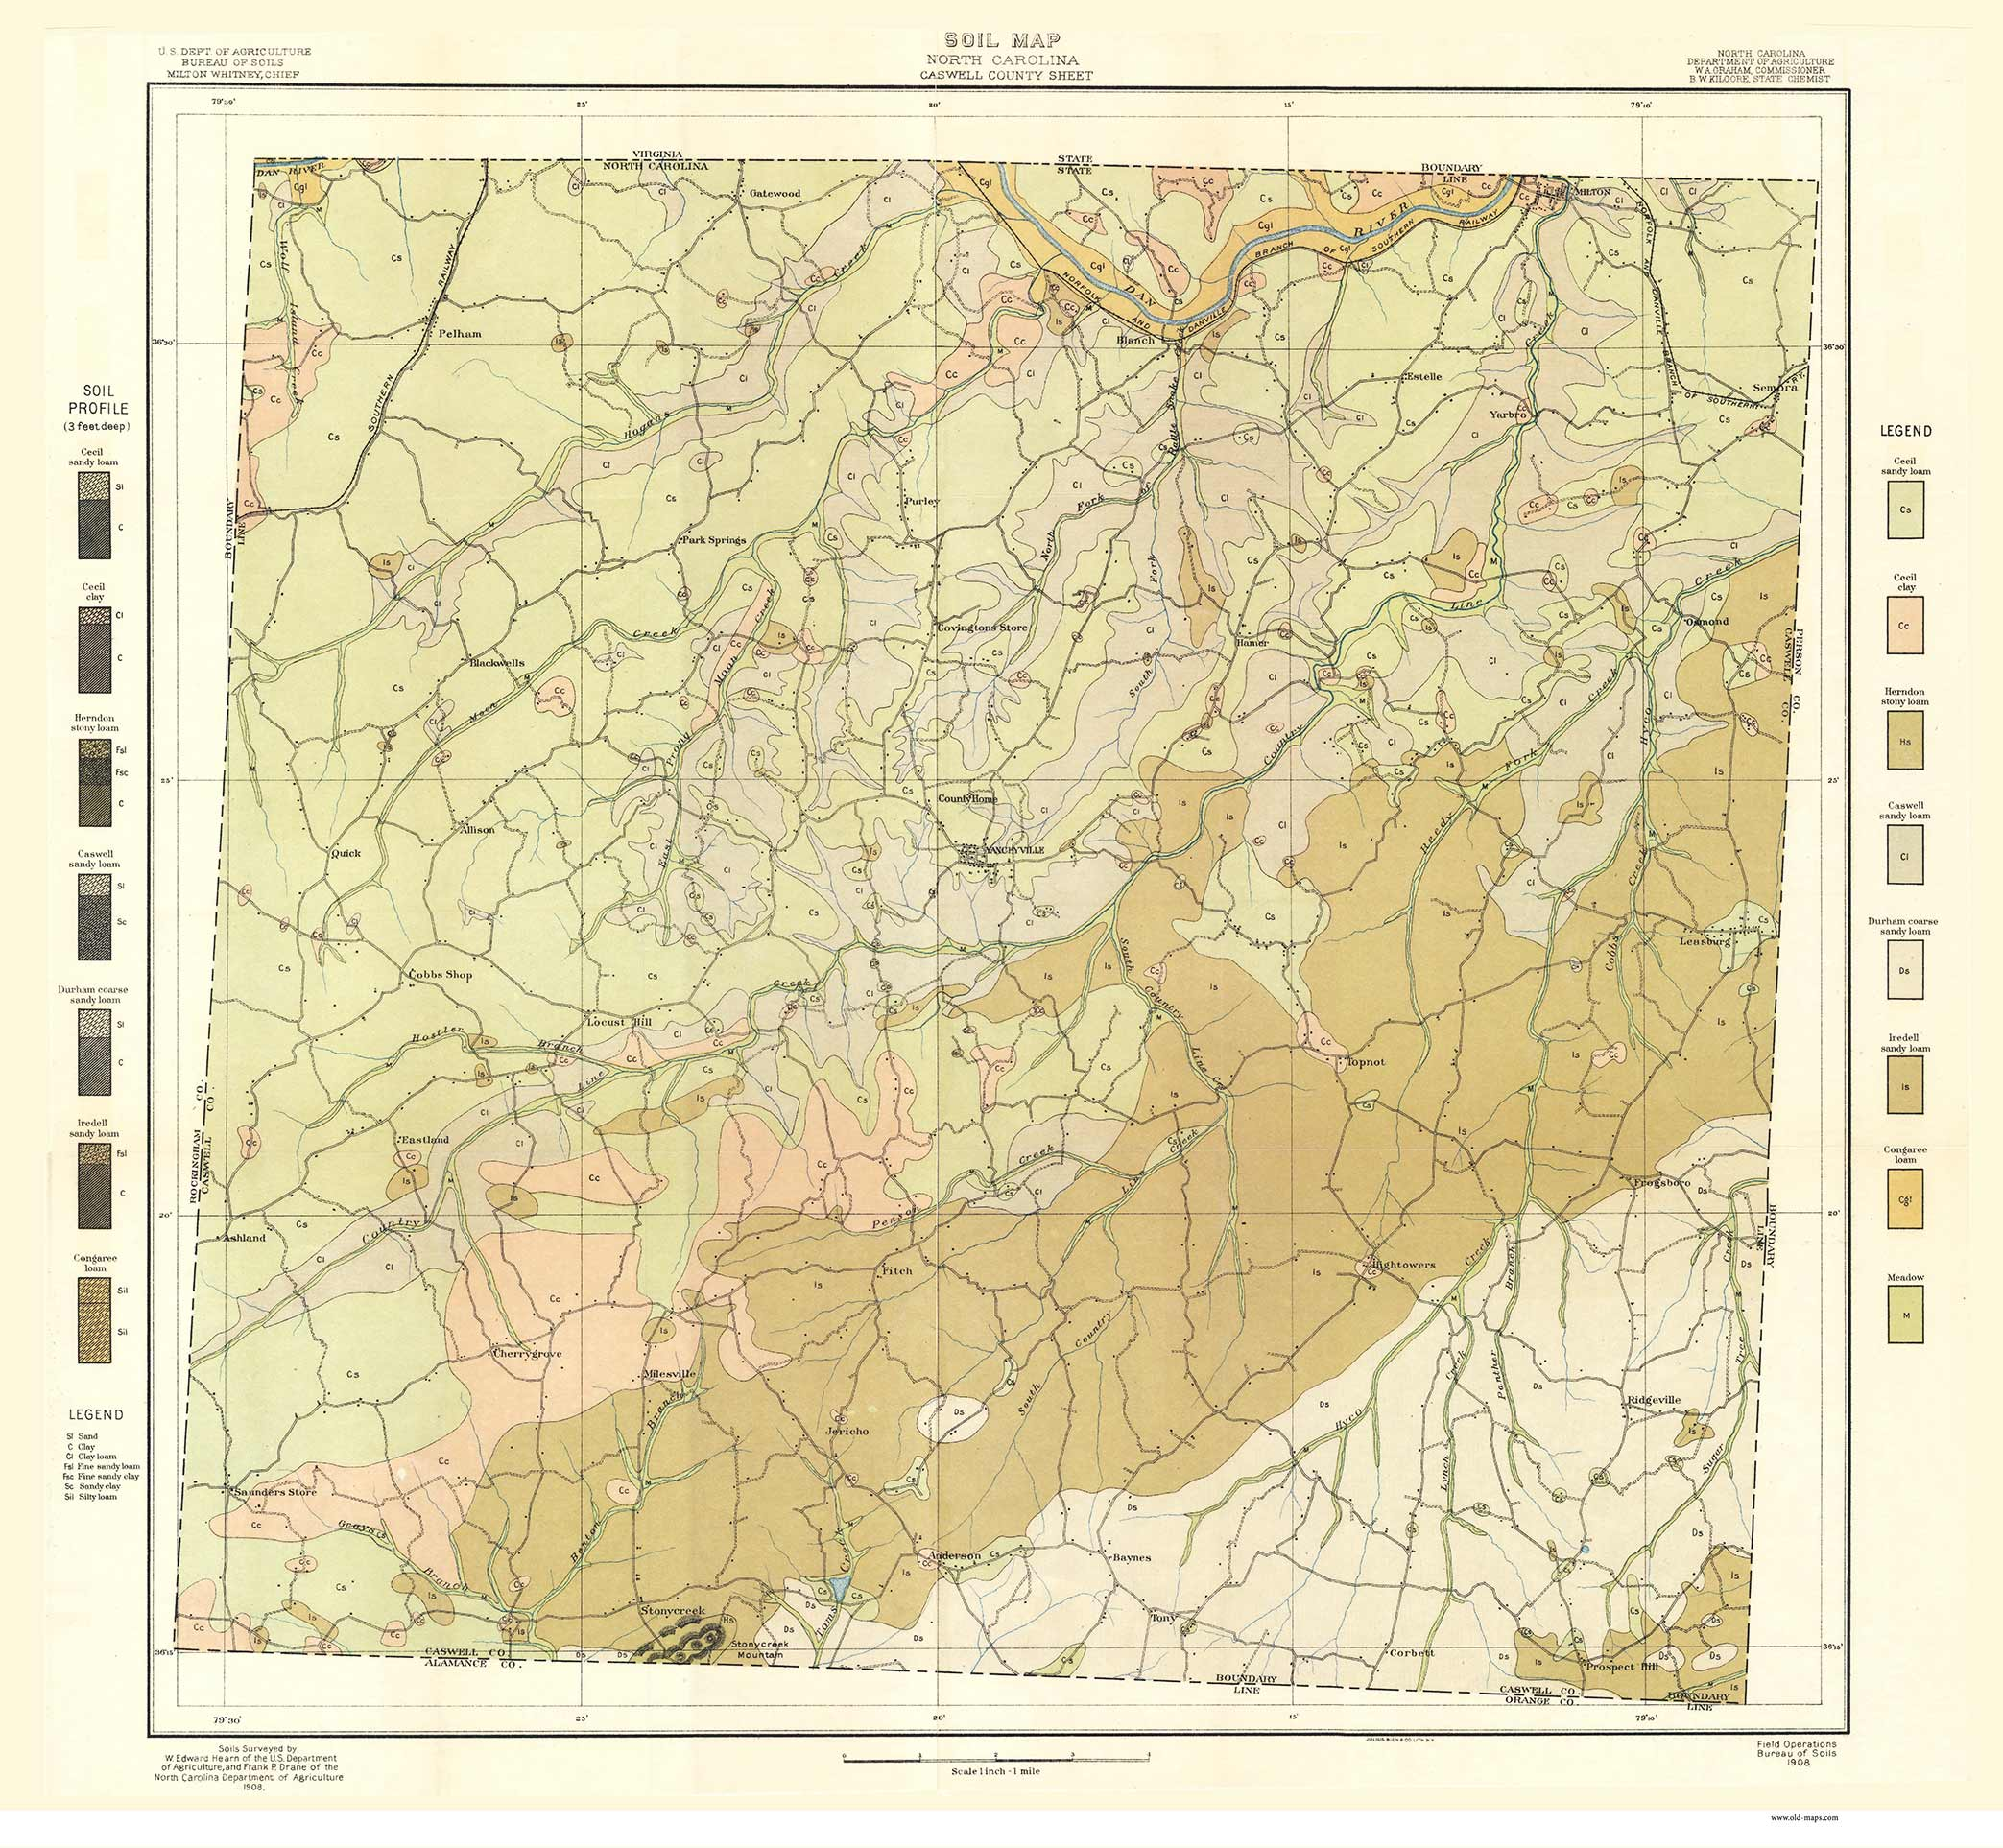 graphic about Printable Map of North Carolina Counties called Caswell County Soils Map, 1908 North Carolina - Aged Map Reprint